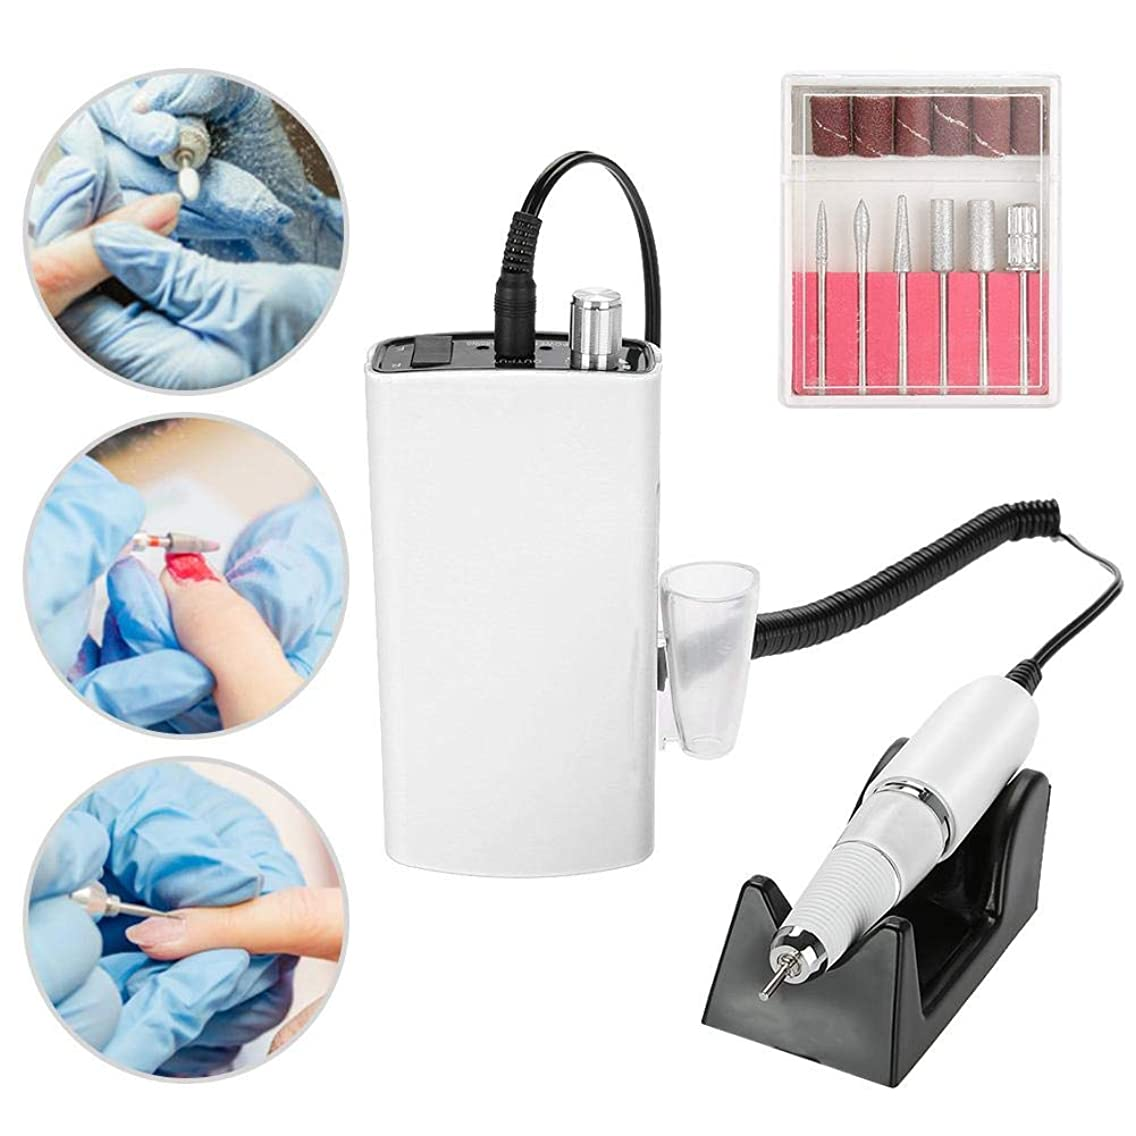 Electric Nail Drill Machine Rechargeable Nail File Driller Manicure Pedicure Polishing Nail Care Tool For Acrylic, Gel Nails, Home Salon Use (White)